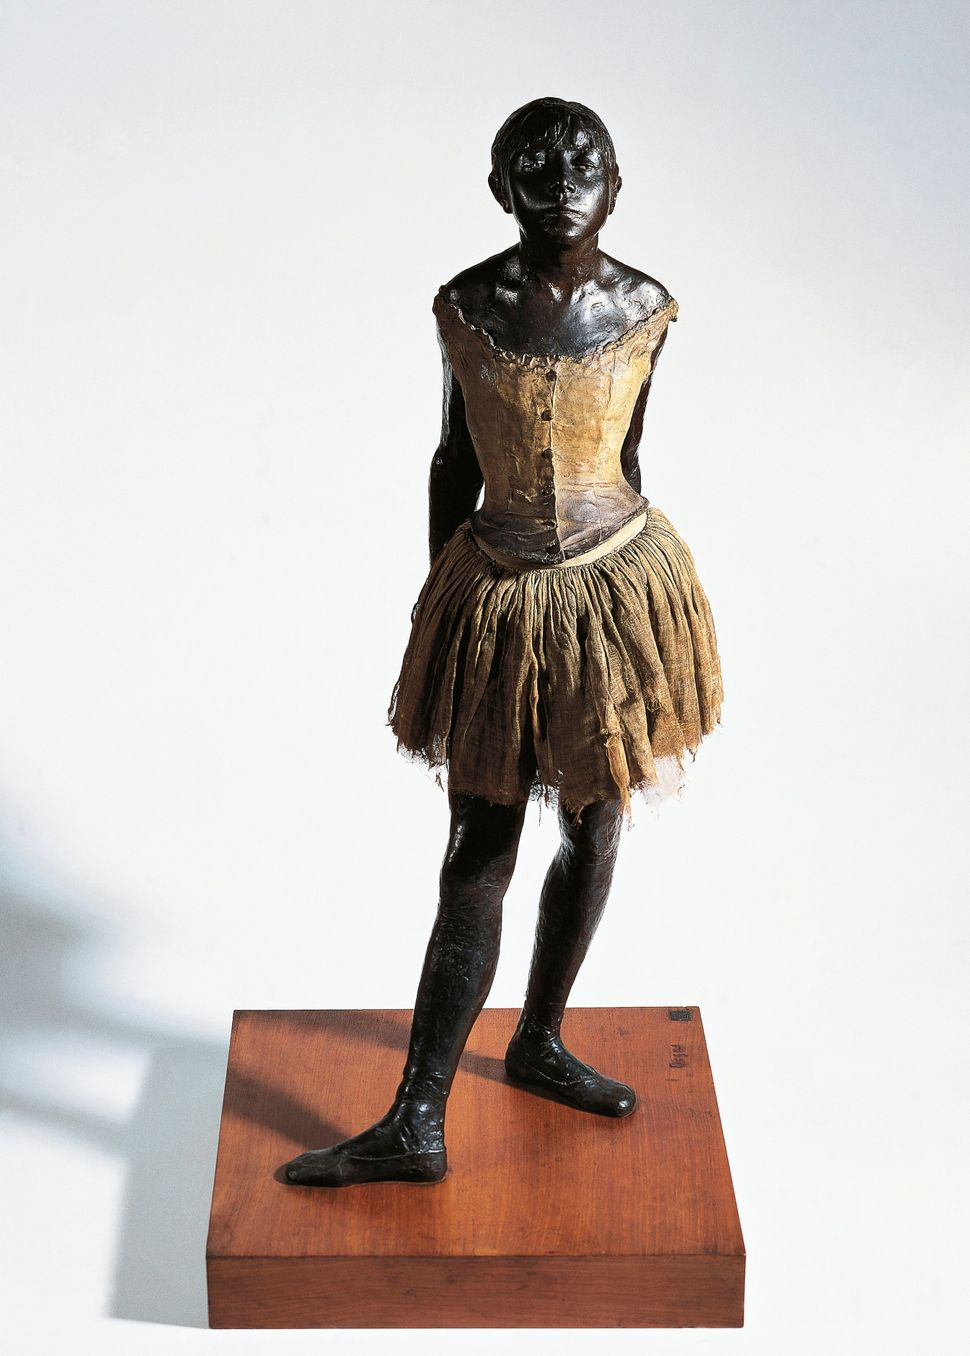 Author Camille Laurens explores the relationship between Degas and van Goethem in her book&nbsp;<i>Little Dancer Aged Fourtee